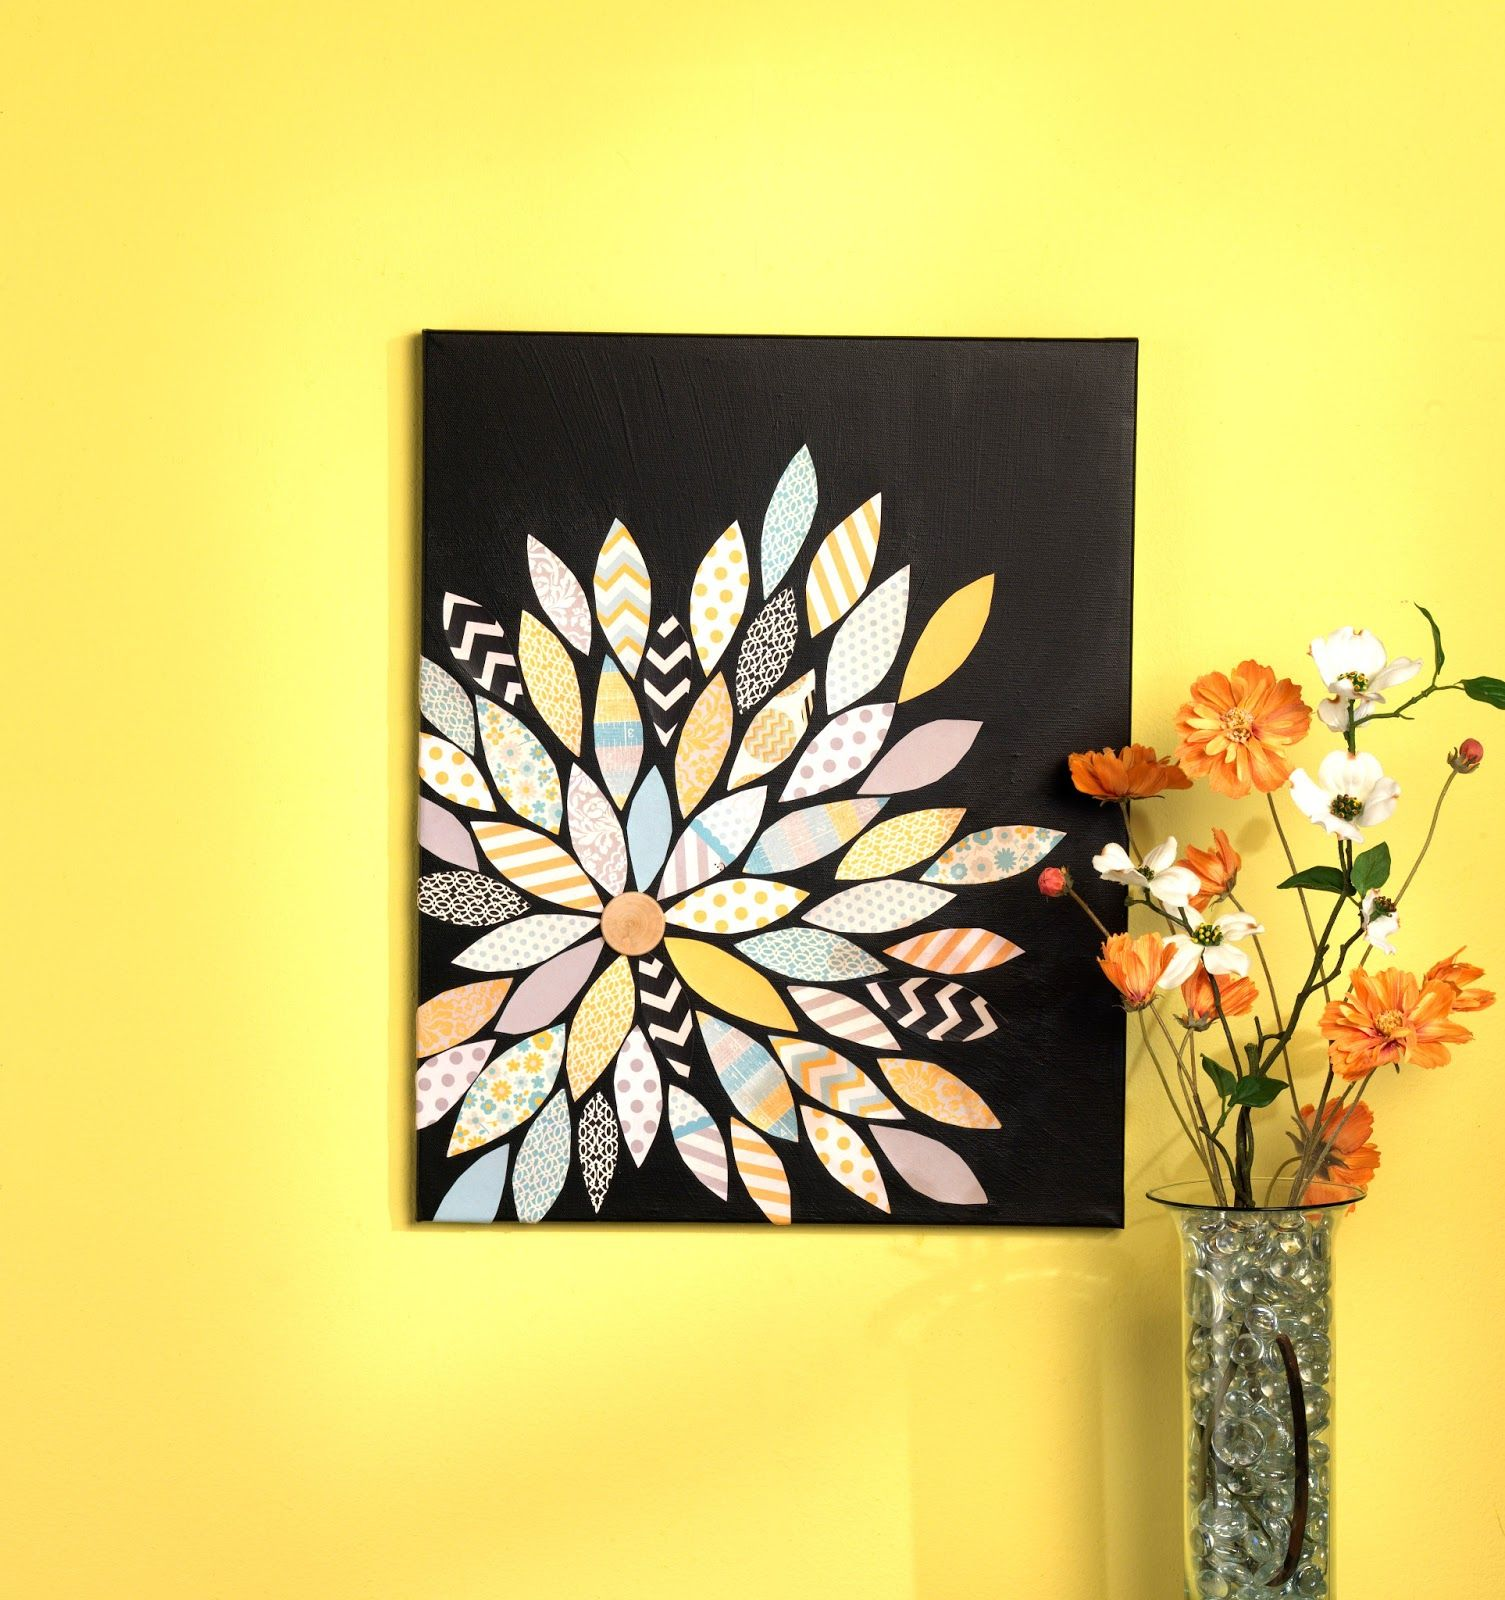 Scrapbook paper pieced flower diy canvas art crafts for Bathroom canvas painting ideas